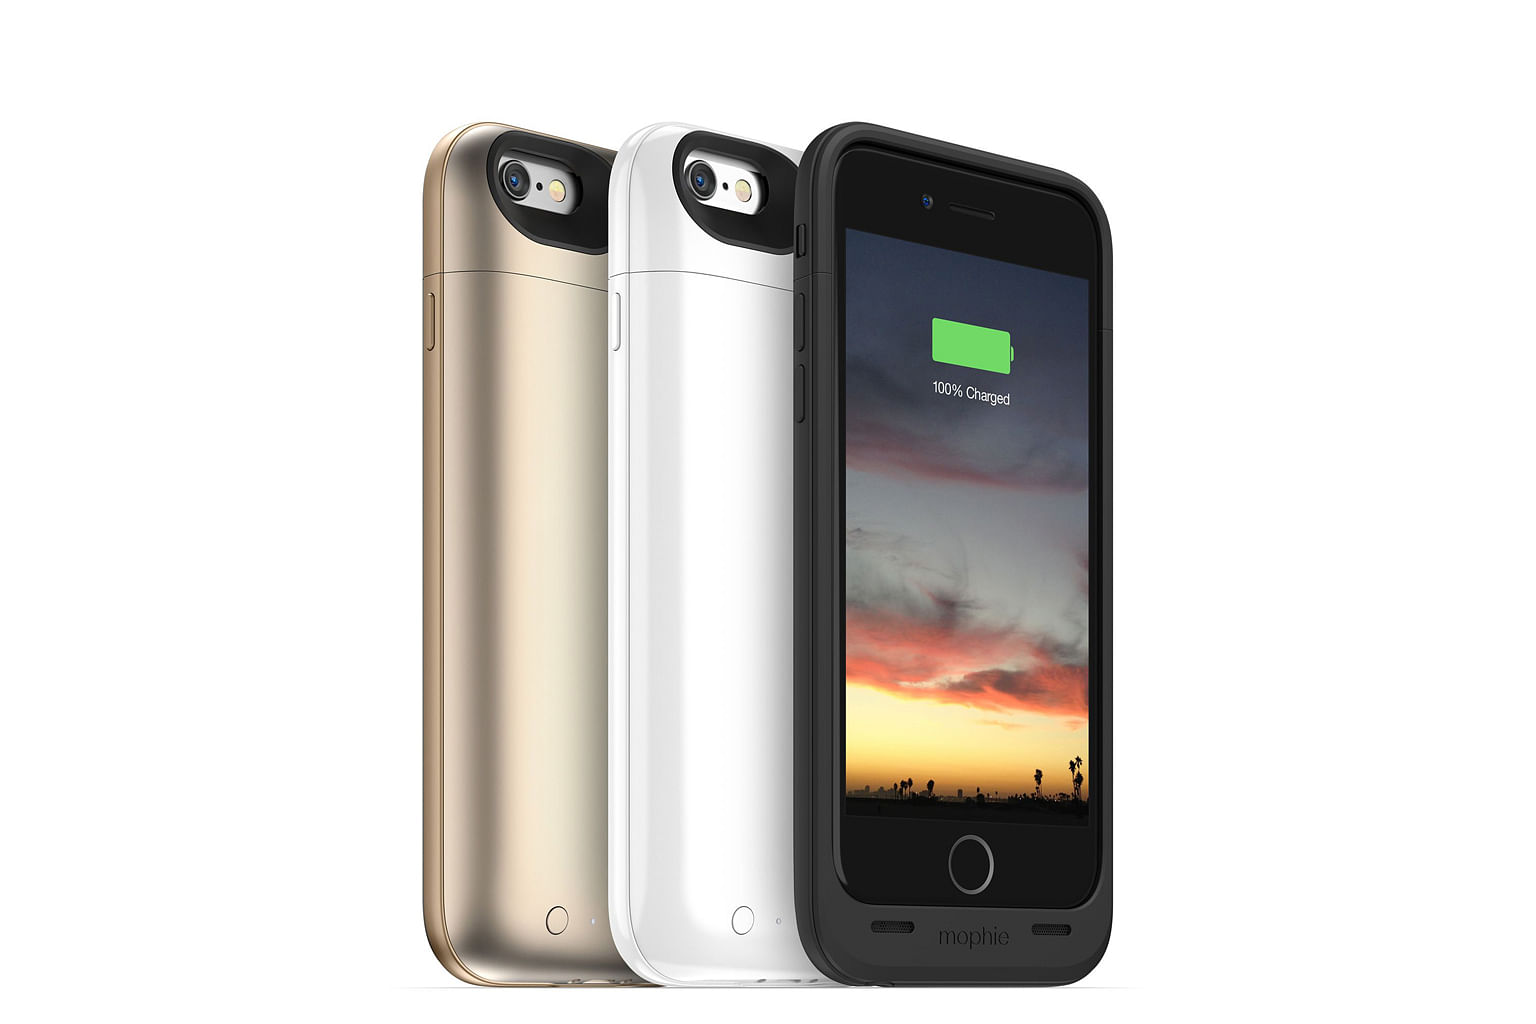 Of the four cases, the Mophie Juice Pack for iPhone 6 Plus is the thinnest and lightest. It is only 14.5mm thick and weighs 111g. You can leave the iPhone in the case when syncing it with a computer.